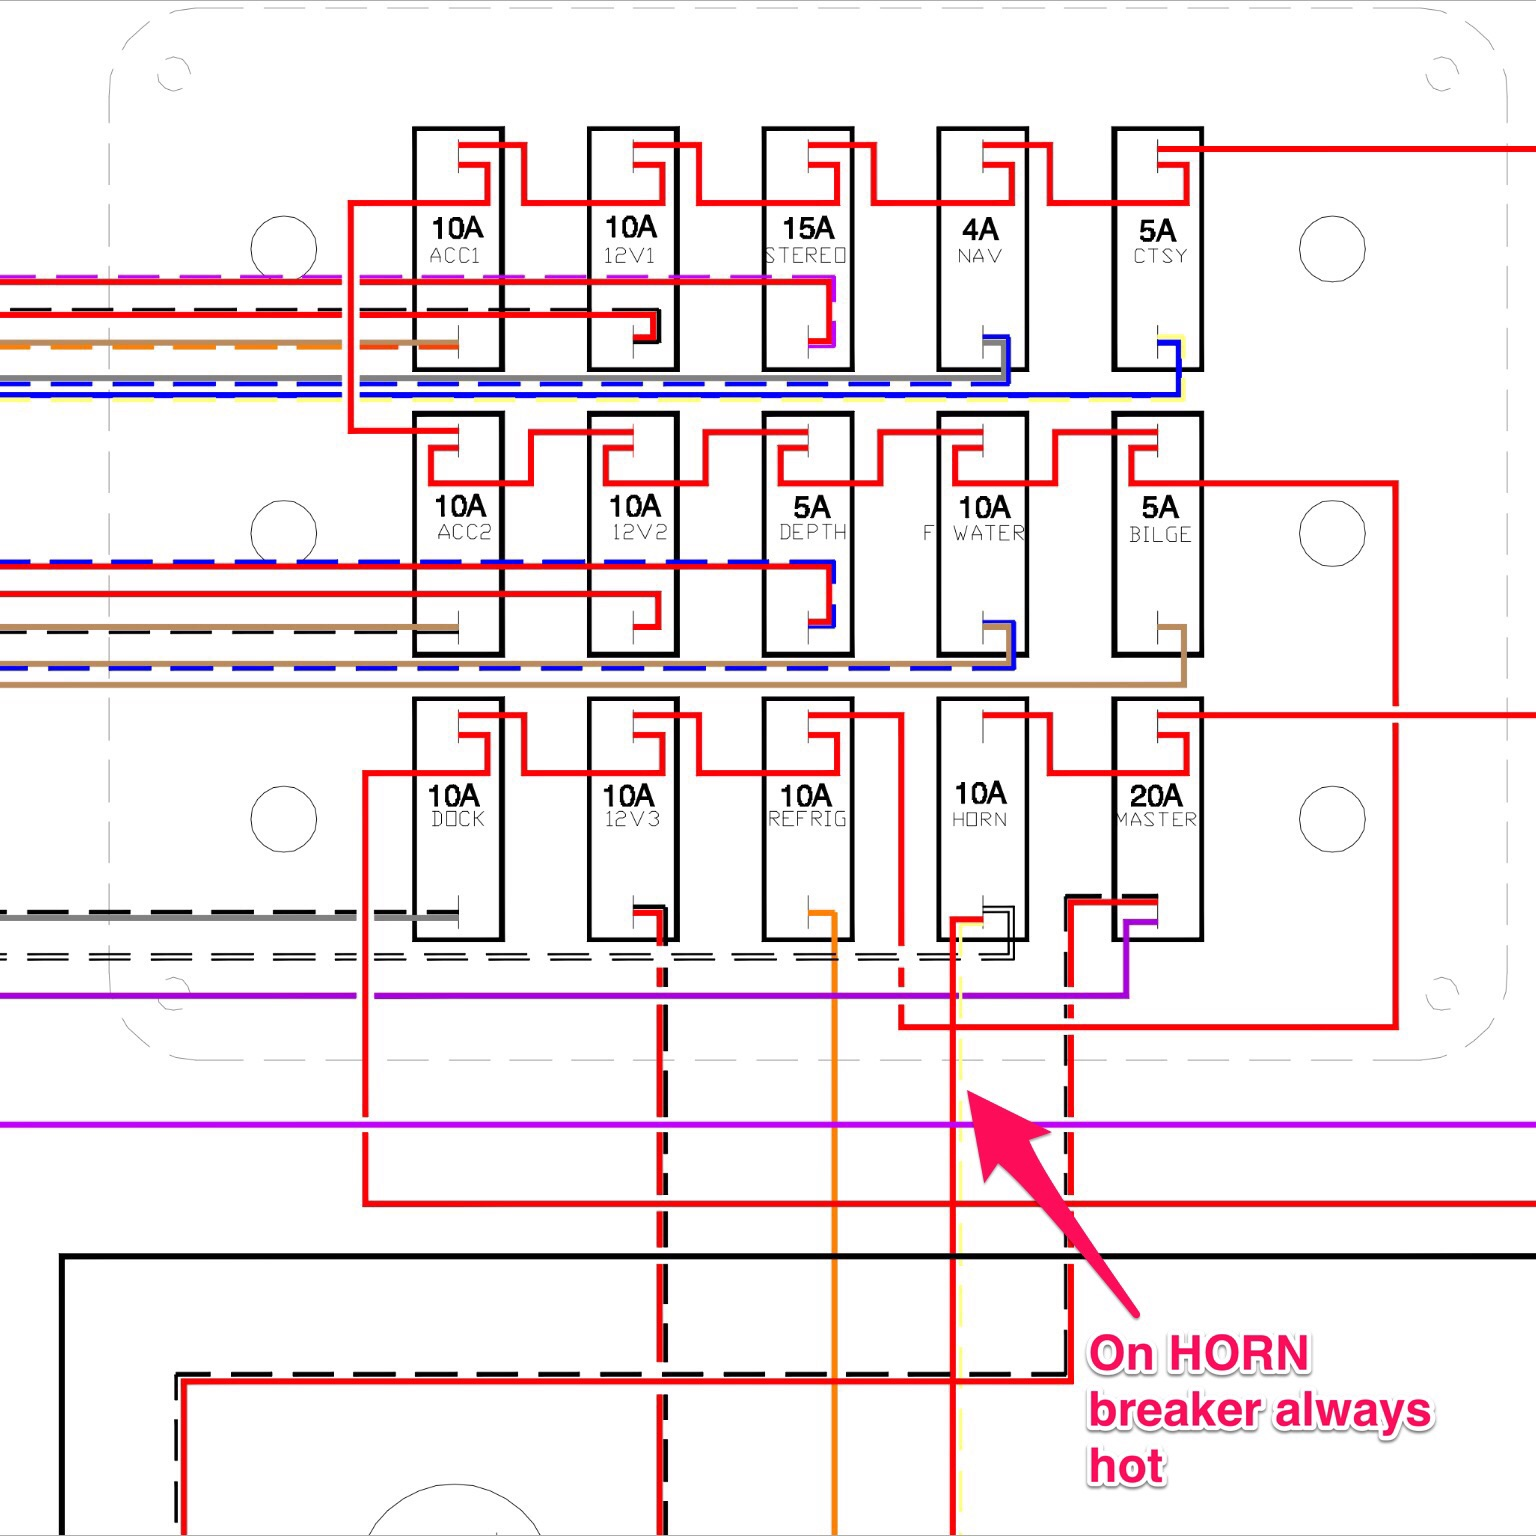 nsdycn1woofn wiring diagram for sony readingrat net wiring diagram 2001 hurricane deck boat at gsmx.co